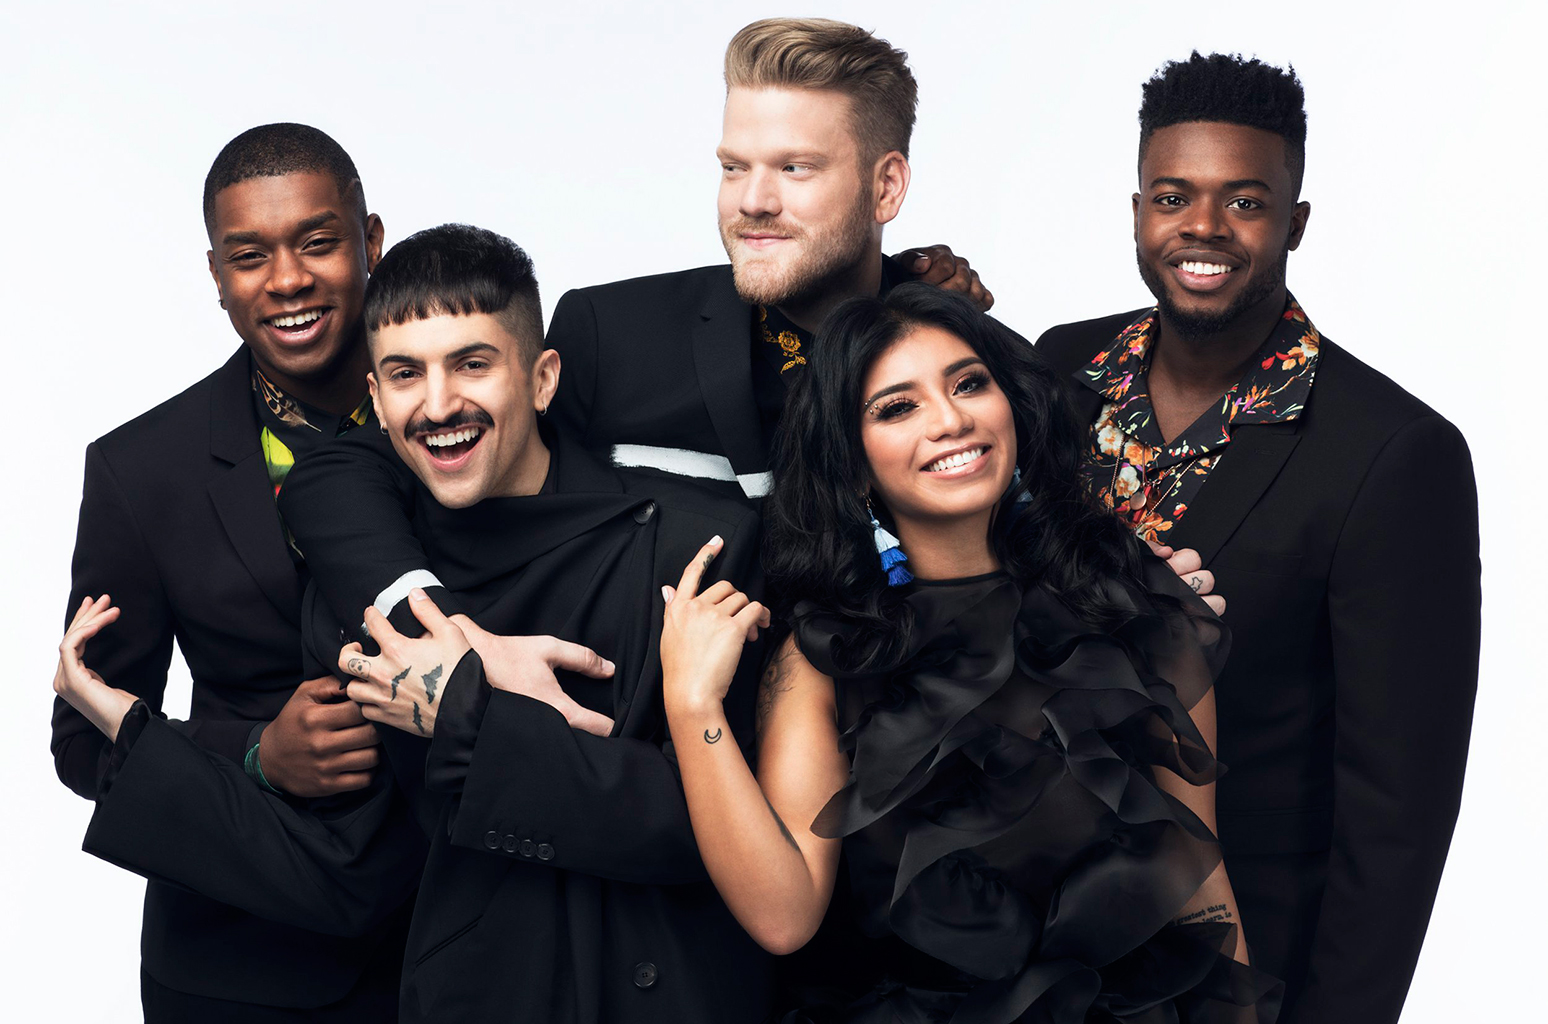 01-Pentatonix-press-photo-by-Jiro-Schneider-2018-billboard-1548.jpg